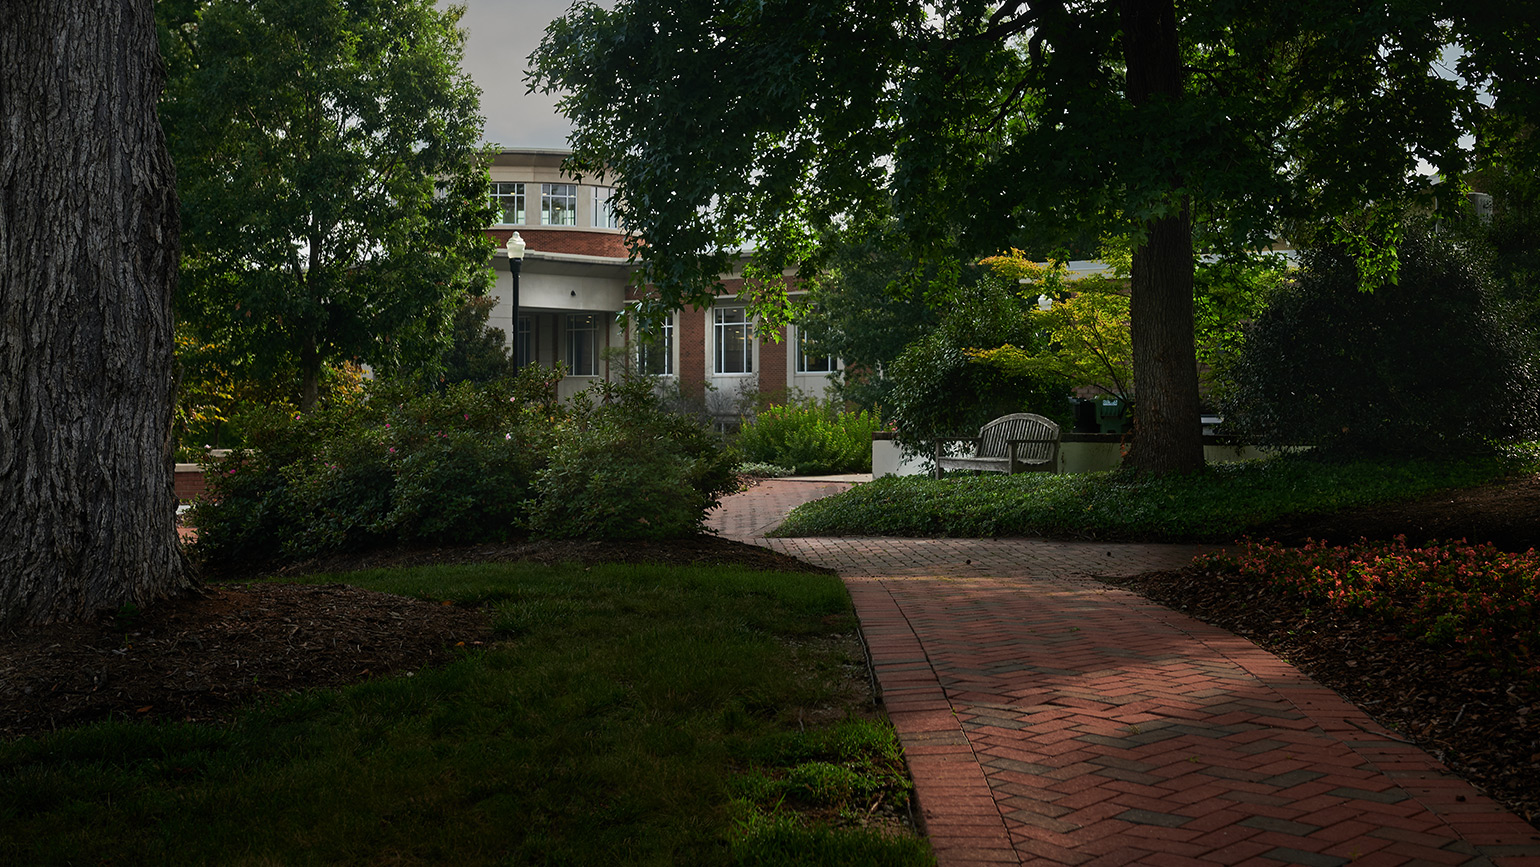 Photo of path and trees on campus with building in background